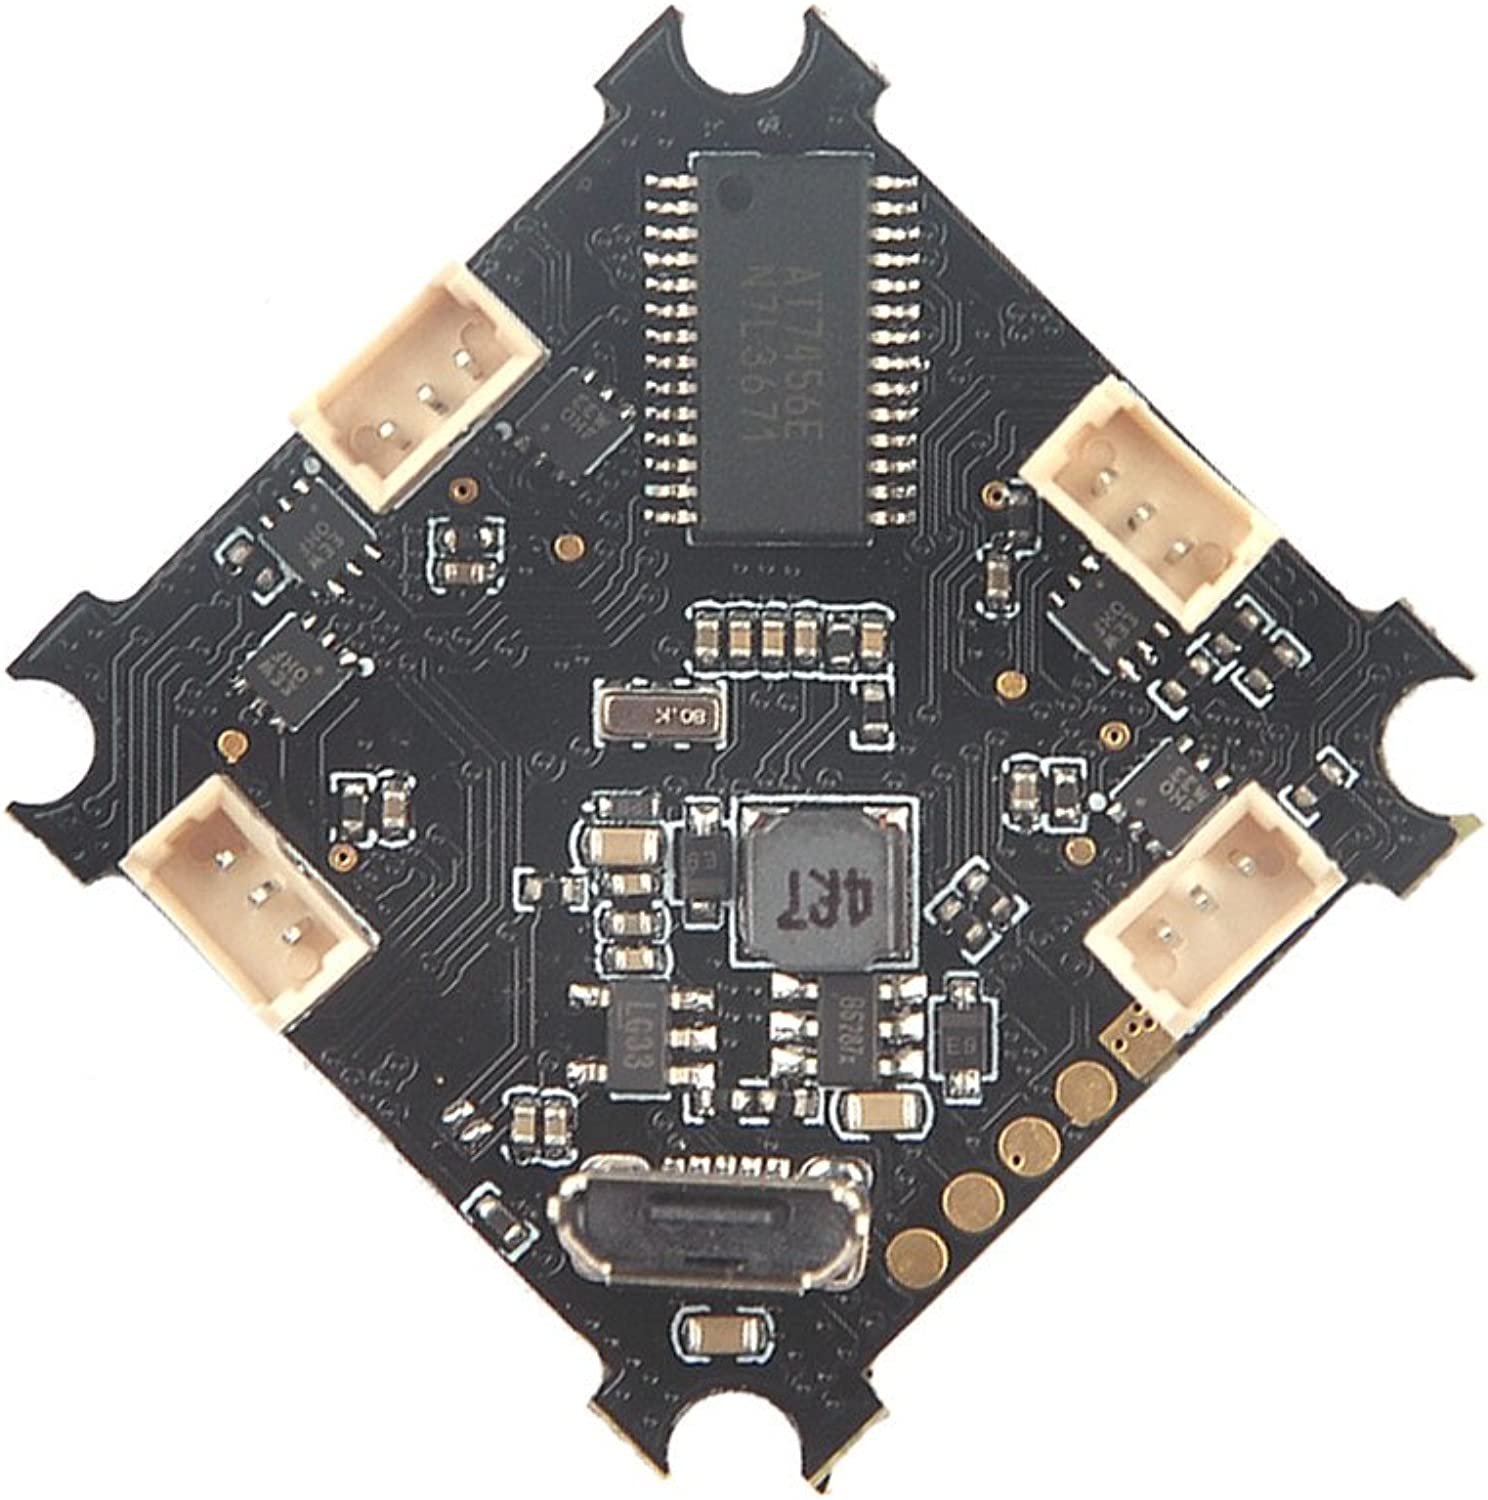 saludable Desconocido Generic Beecore_BL F3 1S Flight Flight Flight Controller Integrated OSD 5A BLHeli_S Brushless ESC for Tiny Whoop RC Drone  contador genuino